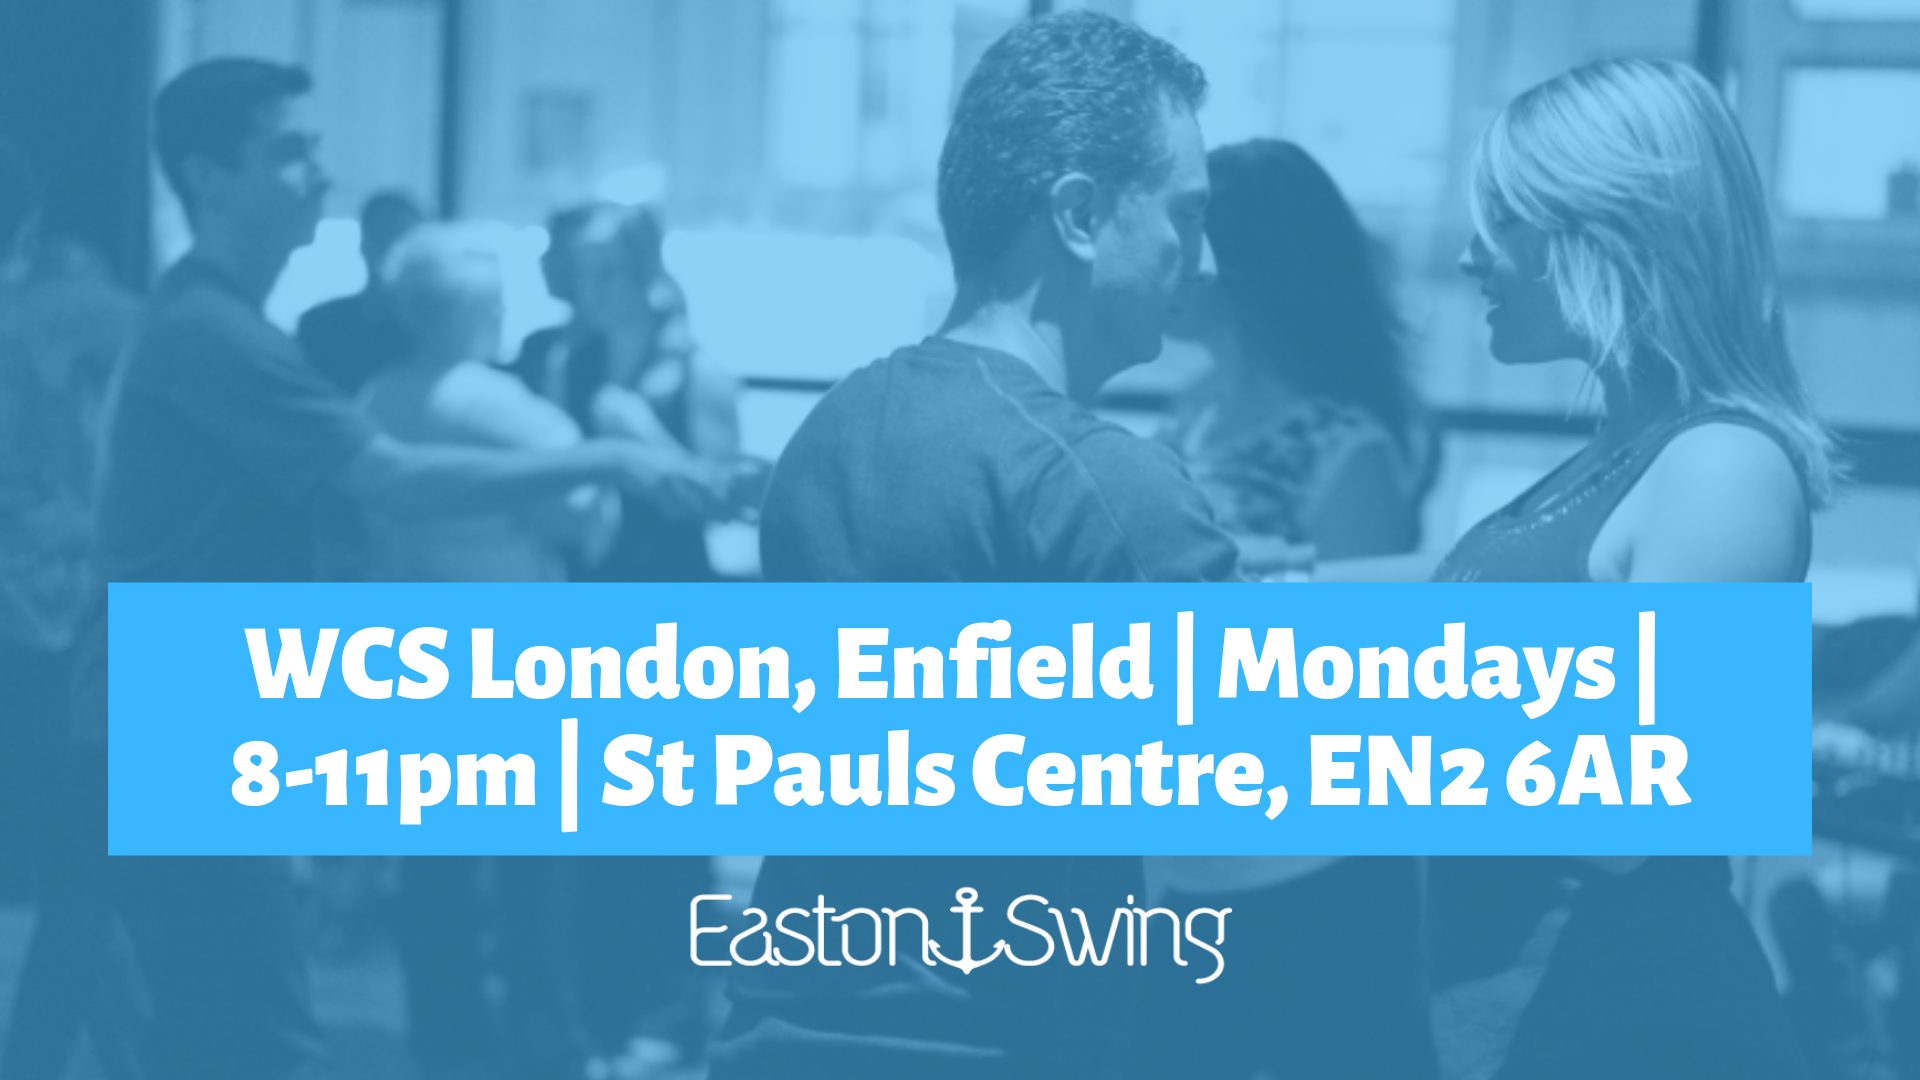 a photograph of people dancing West Coast Swing with a Blue filter overlaid and text regarding a weekly class in enfield, london on mondays